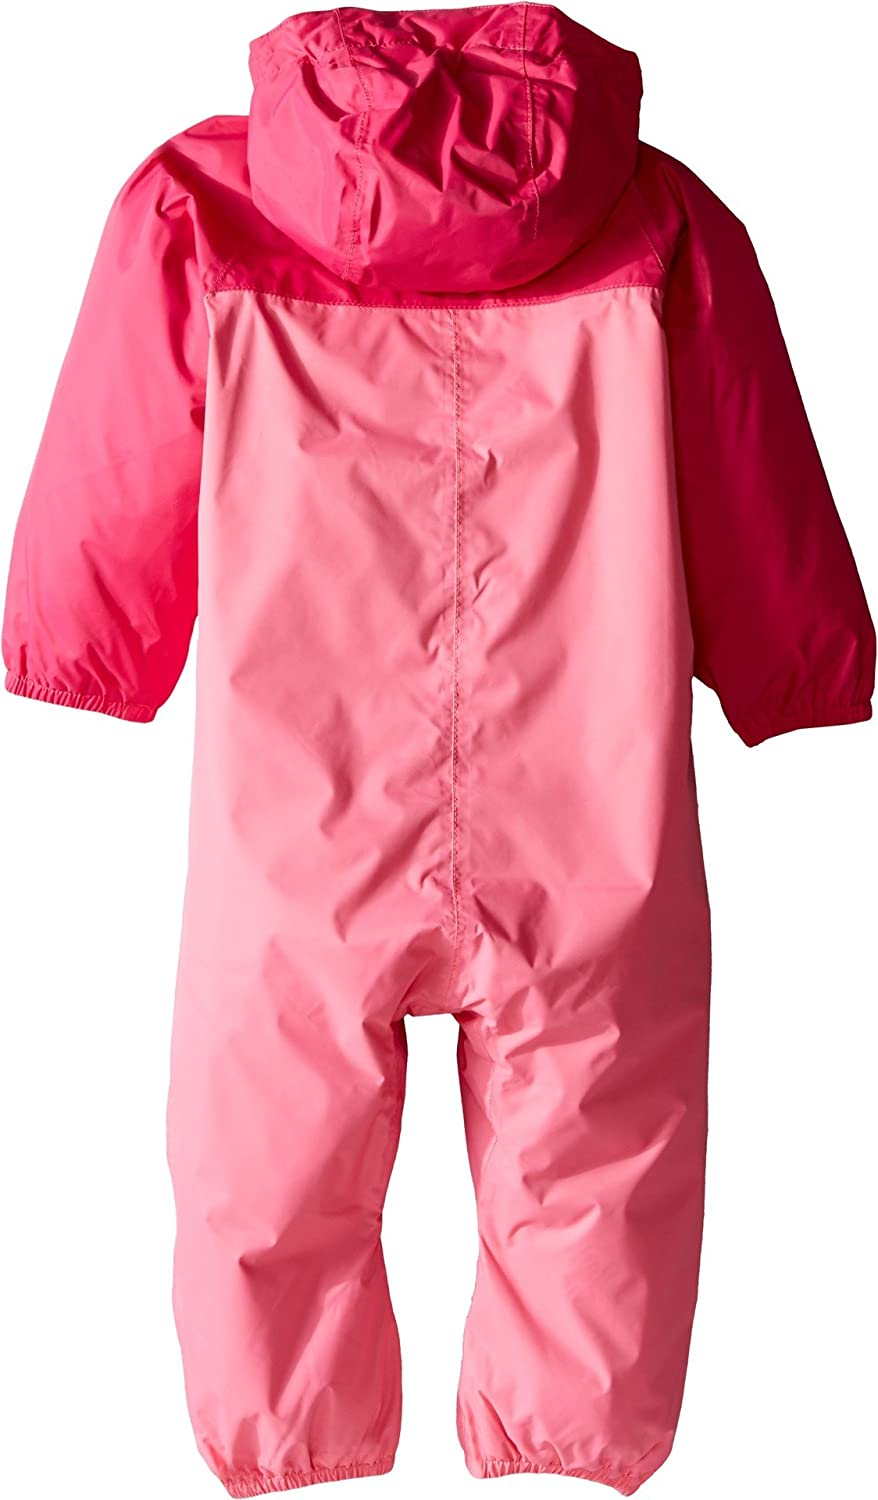 Amazon.com  The North Face Kids Unisex Triclimate¿ One-Piece (Infant) Cha  Cha Pink (Prior Season) 0-3 Months  Sports   Outdoors 2921c4b35